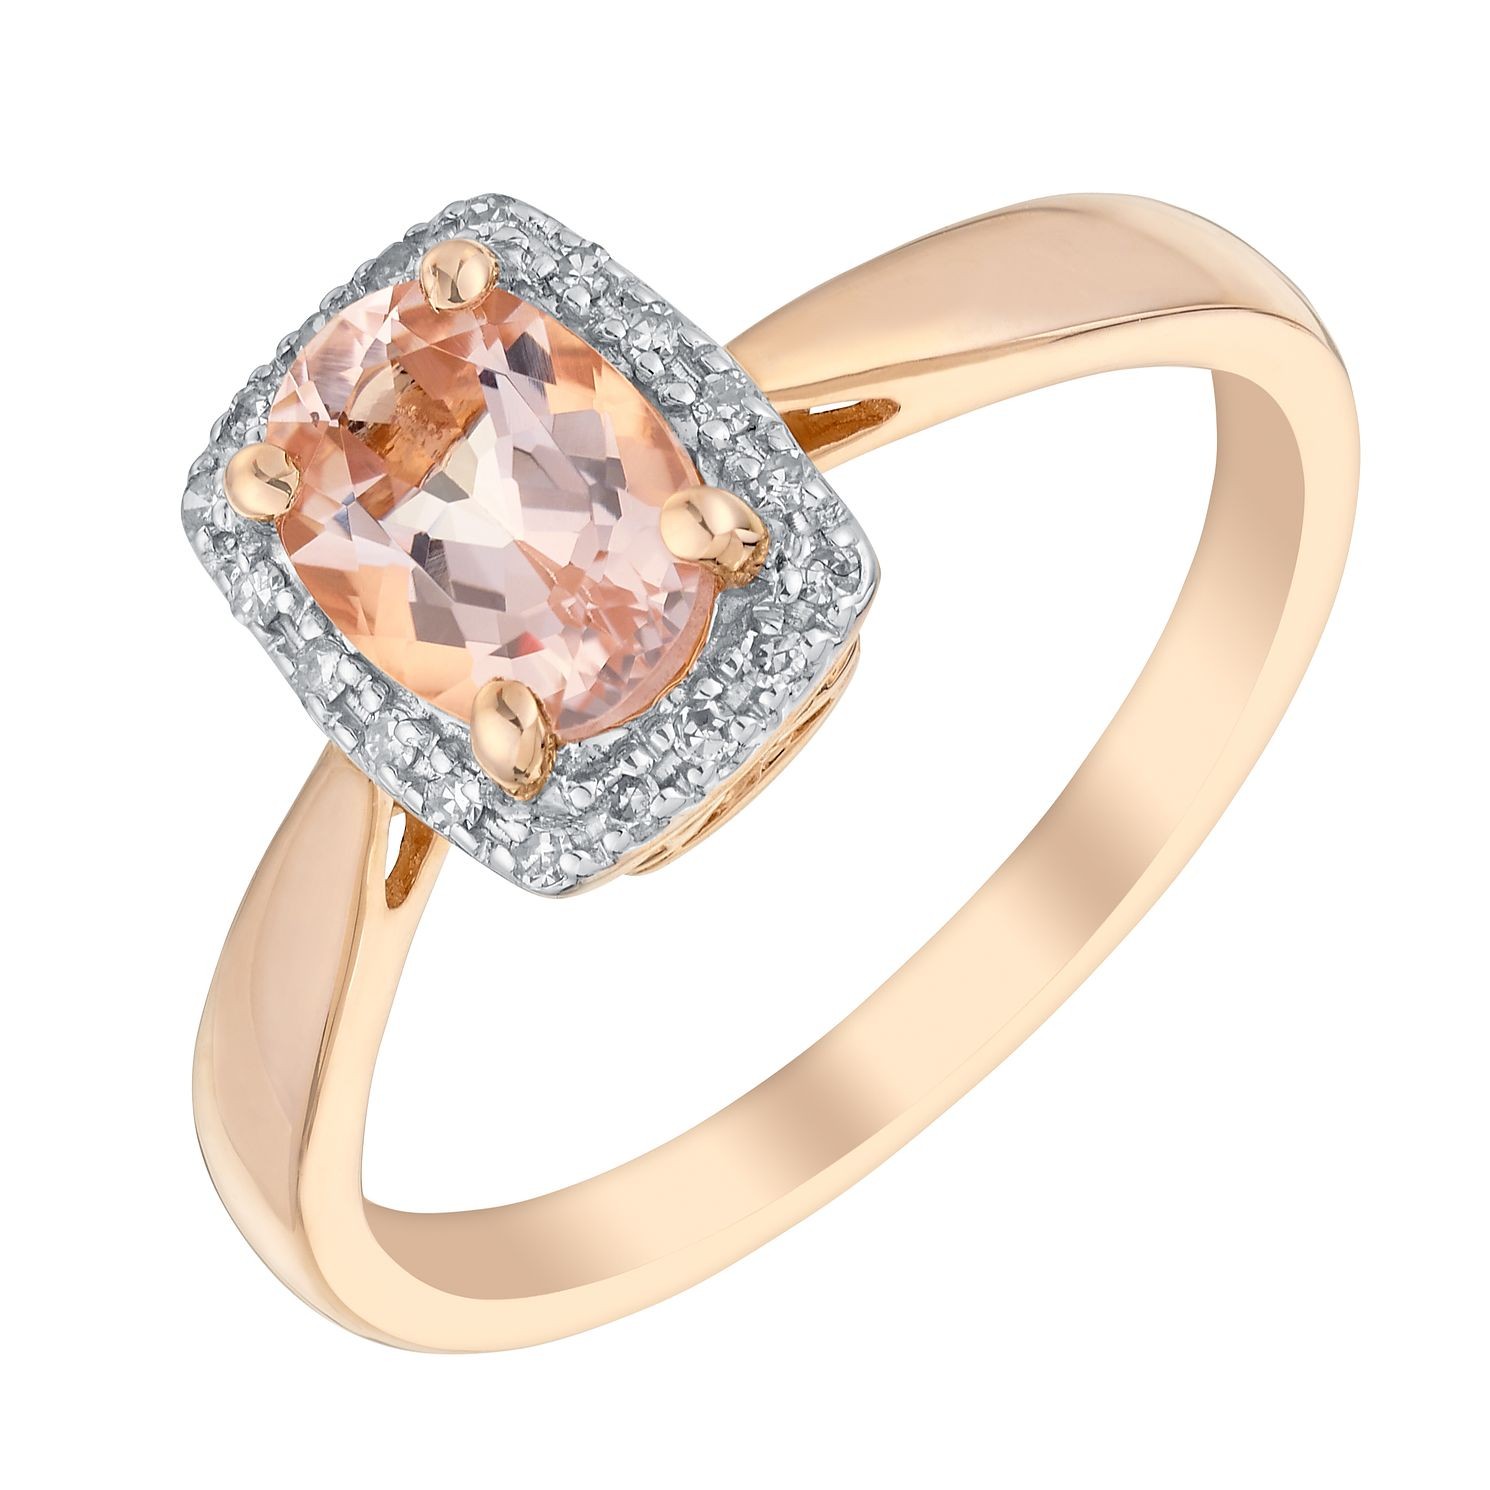 vintage jewellery crop finely with pink diamond scale shop rose gold rings false boodles editor green band the of subsampling window product ring singular shopping and coloured upscale diamonds collage